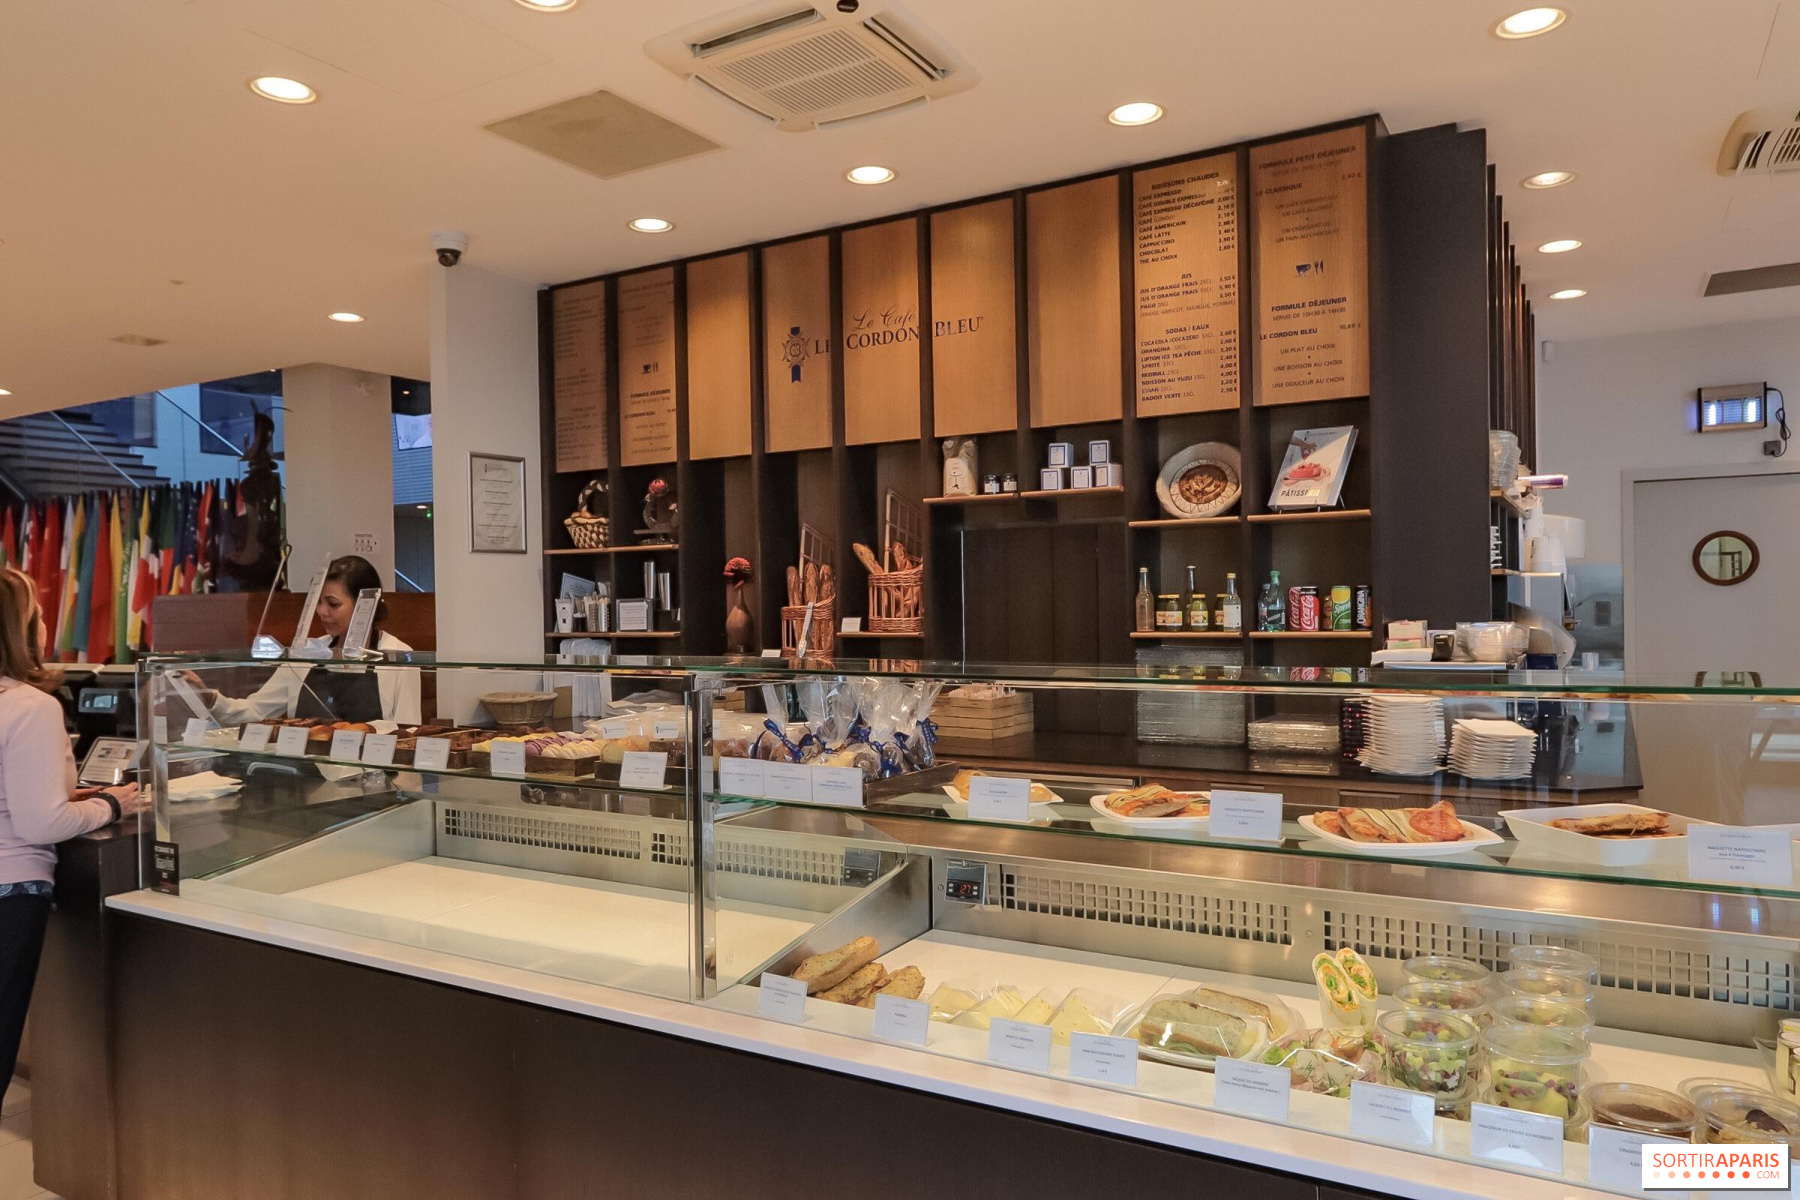 Le Cafe Le Cordon Bleu Patisserie And Cafe Opened To All